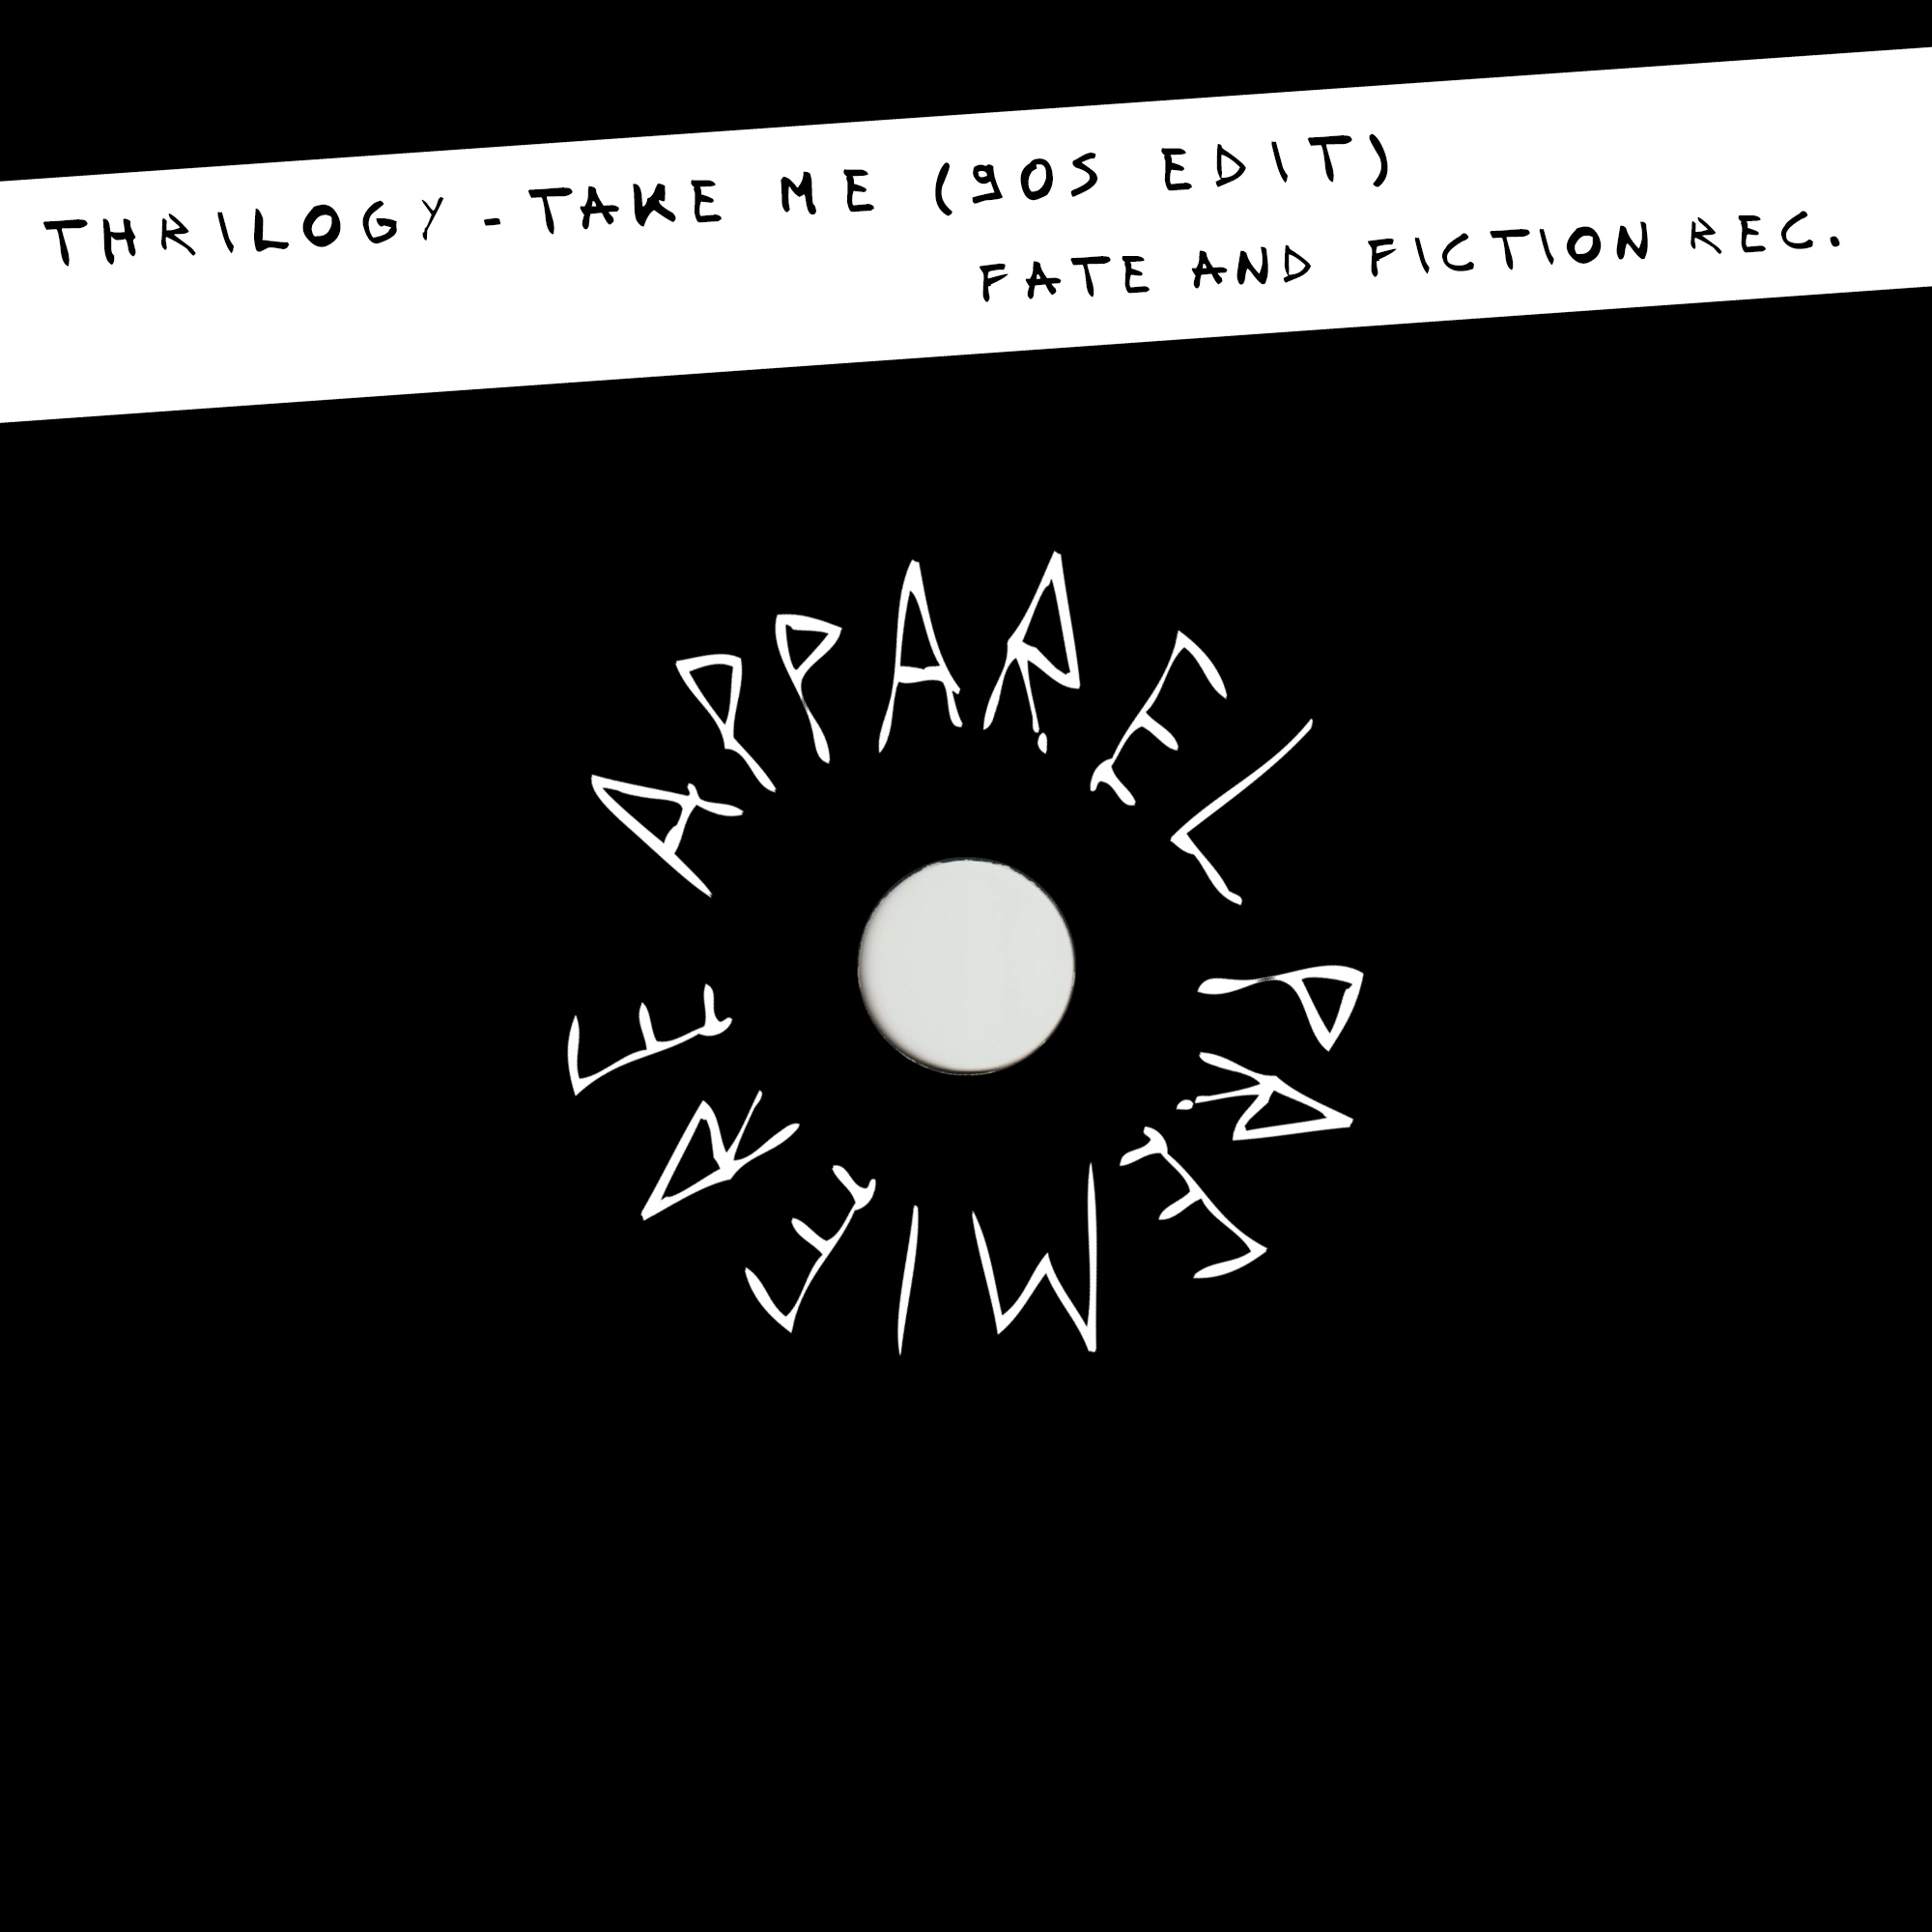 APPAREL PREMIERE: Thrilogy – Take Me (90s Edit) [Fate And Fiction Rec.]